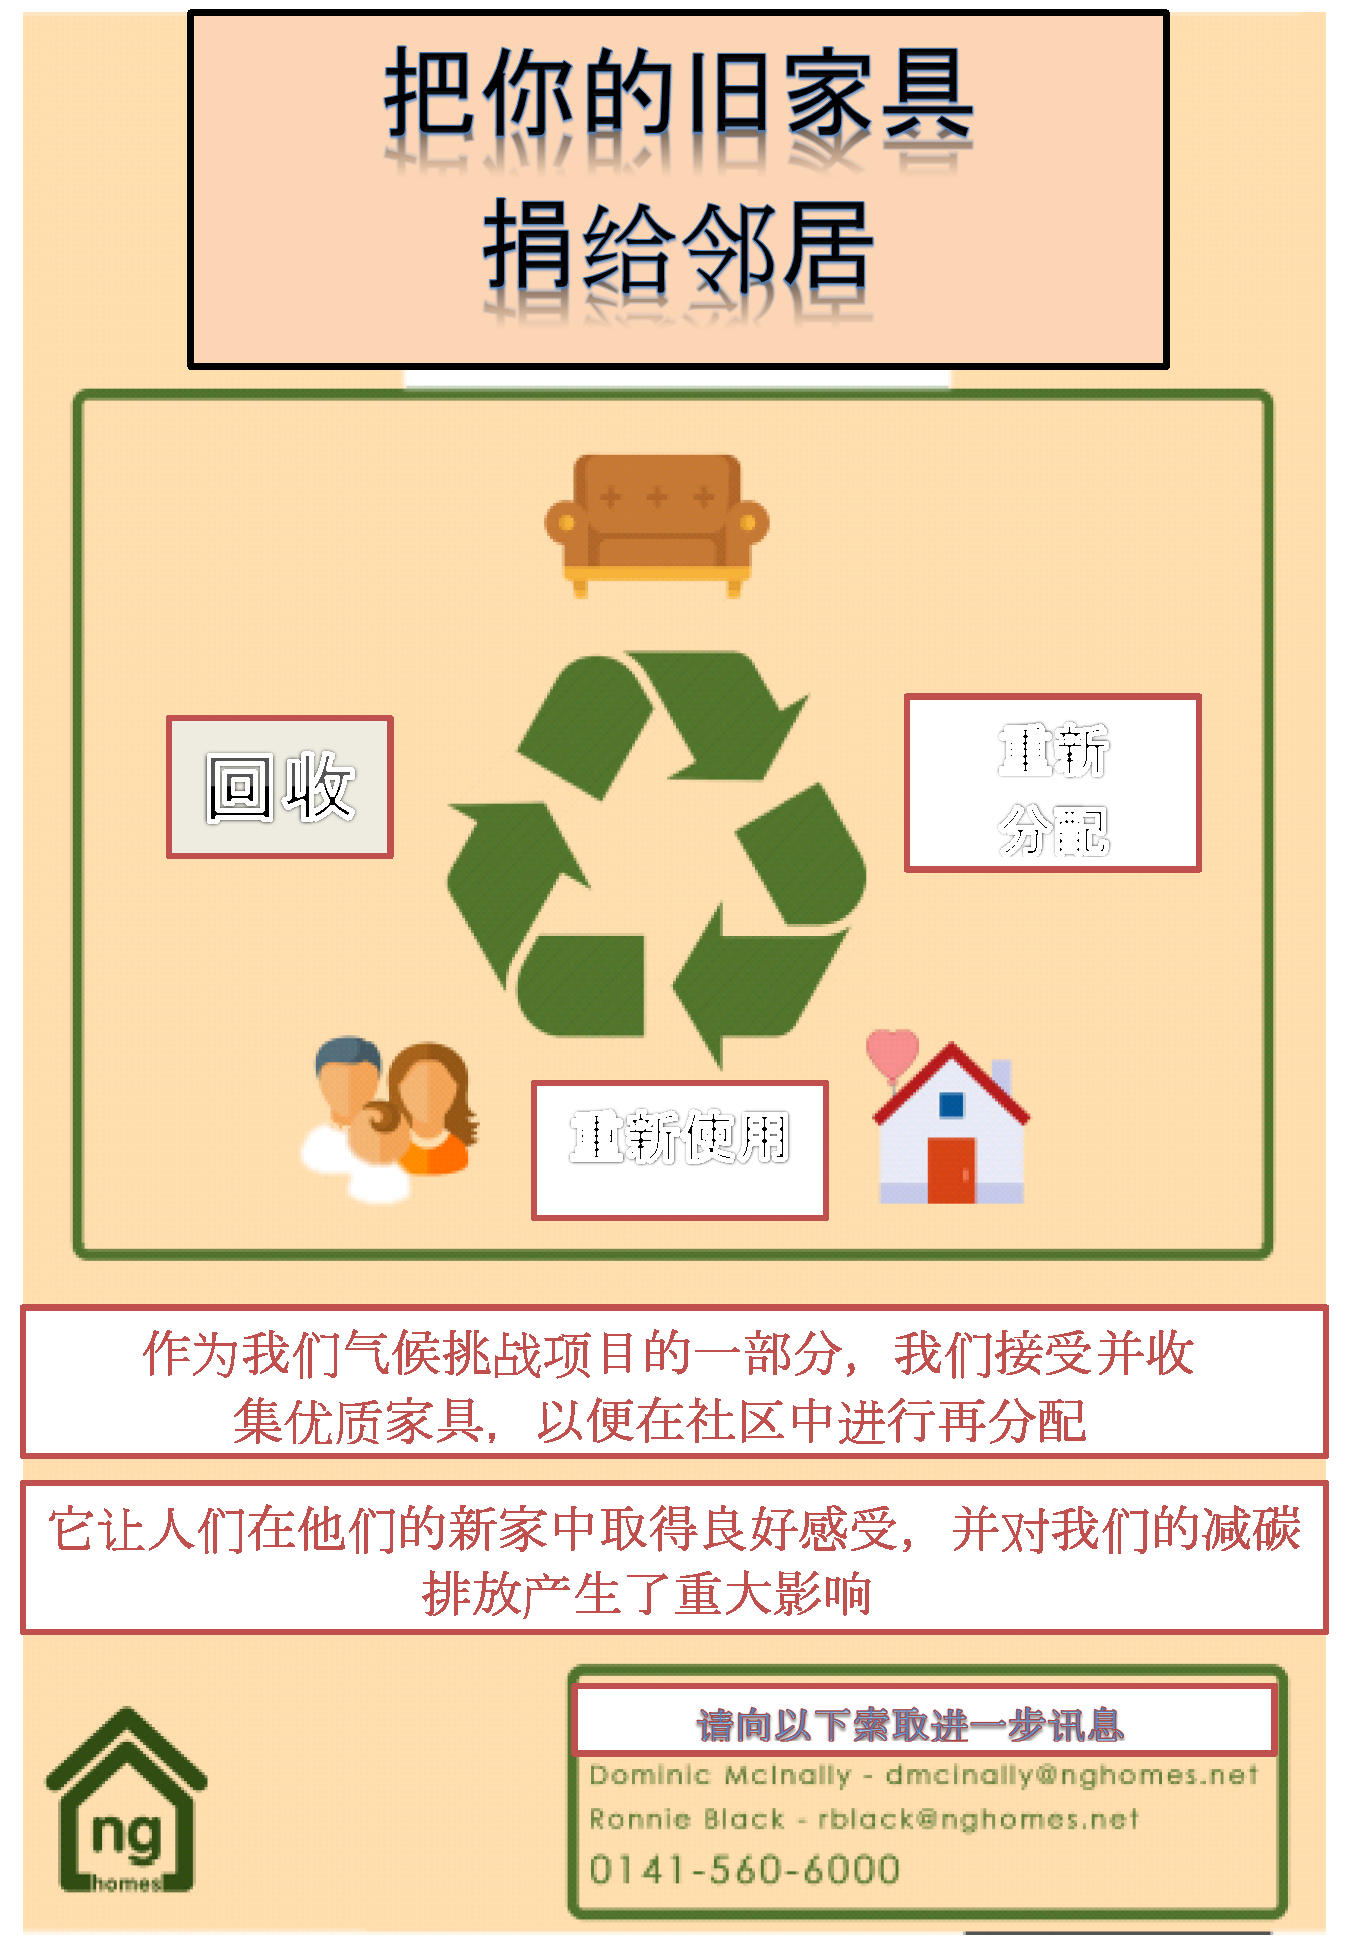 Furniture Redistribution Poster in Chinese